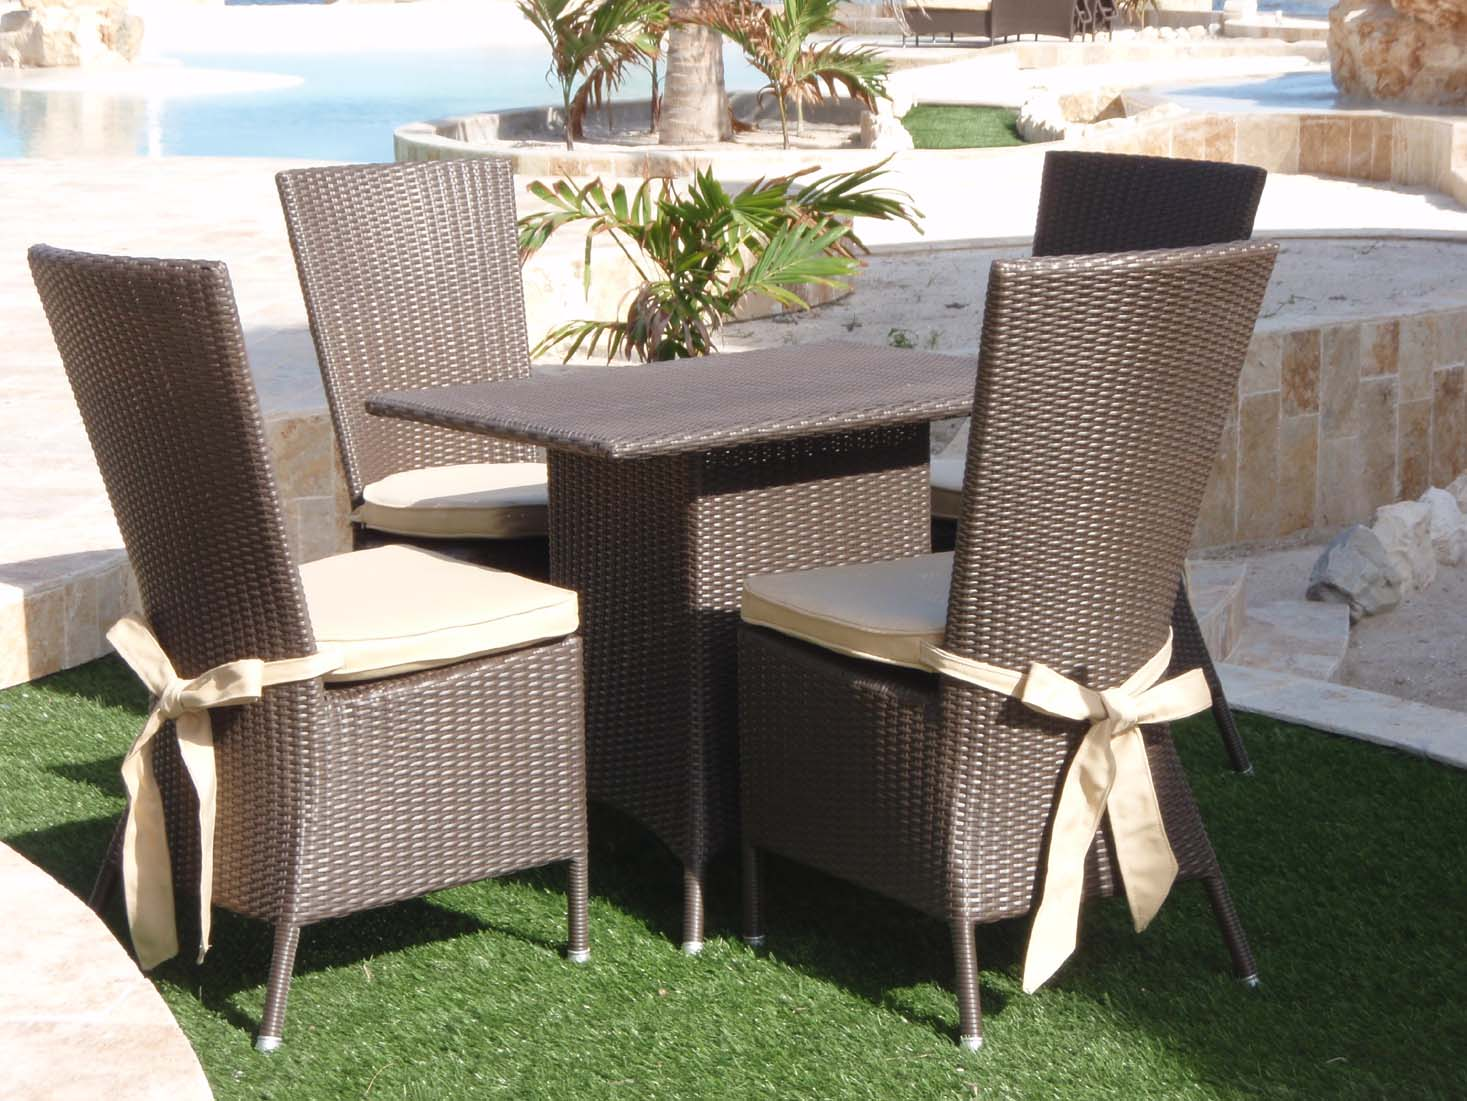 Olympic furniture manufacturers images for Furniture manufacturers